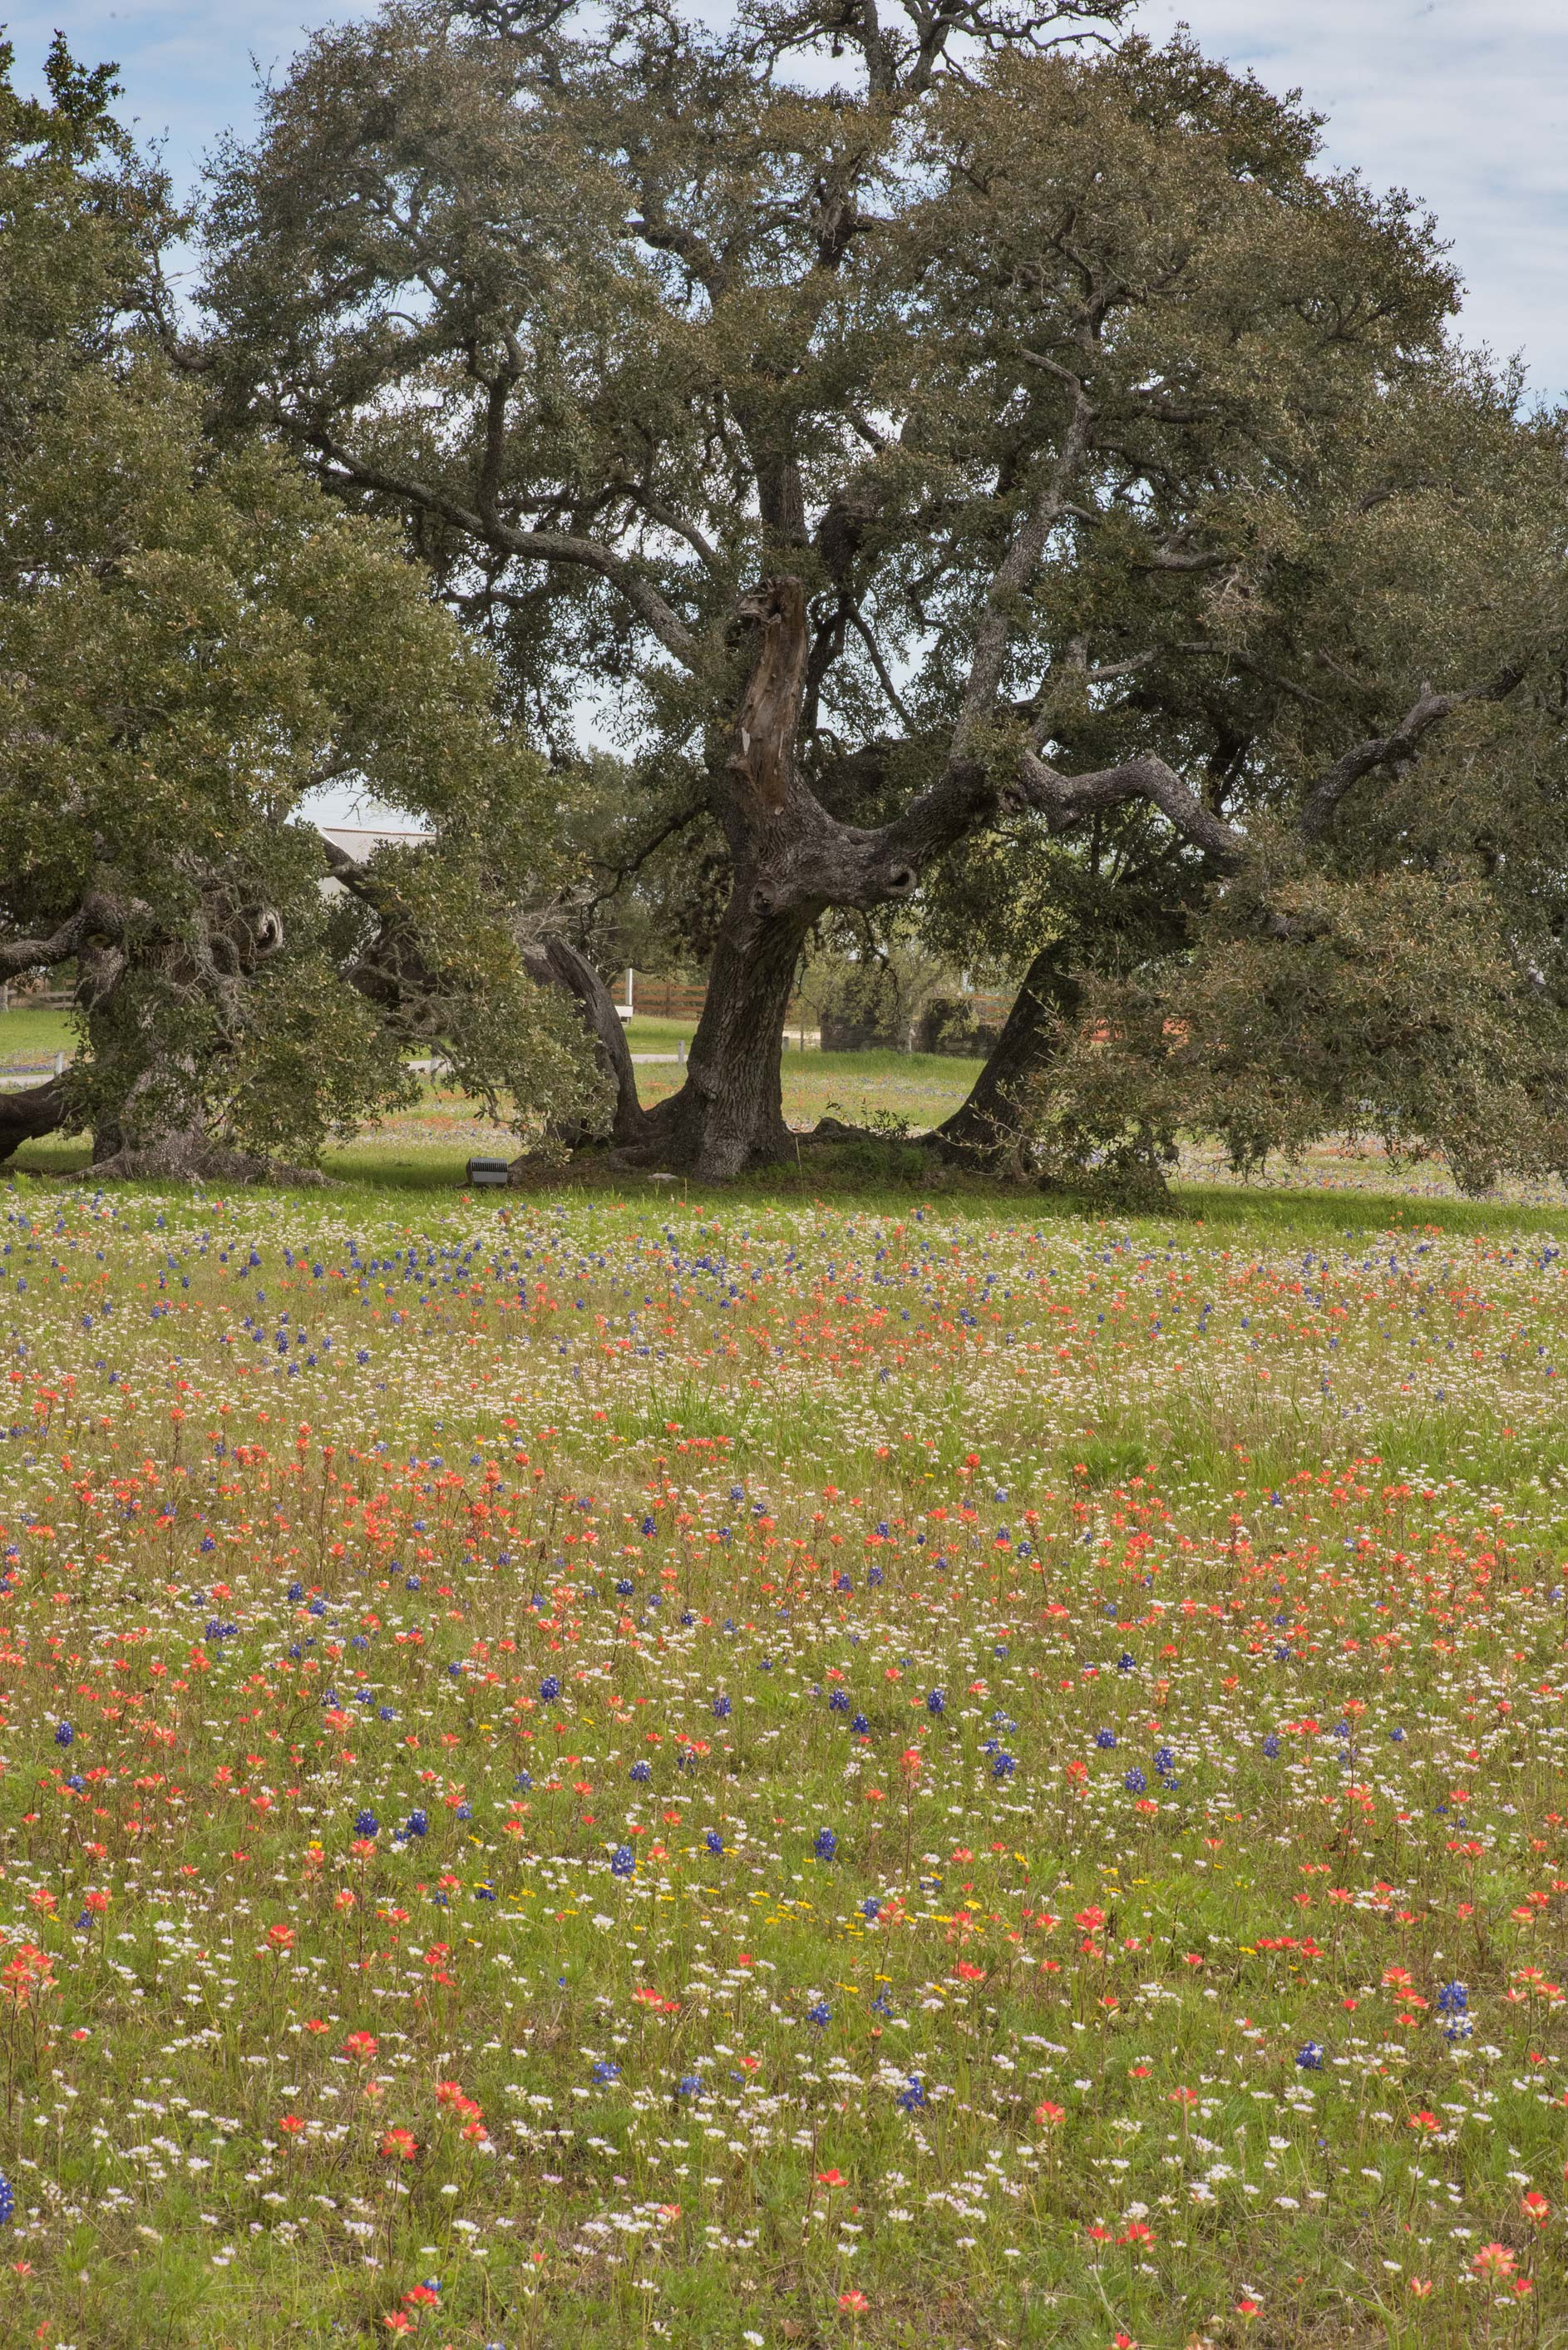 Field and oaks in Old Baylor Park. Independence, Texas